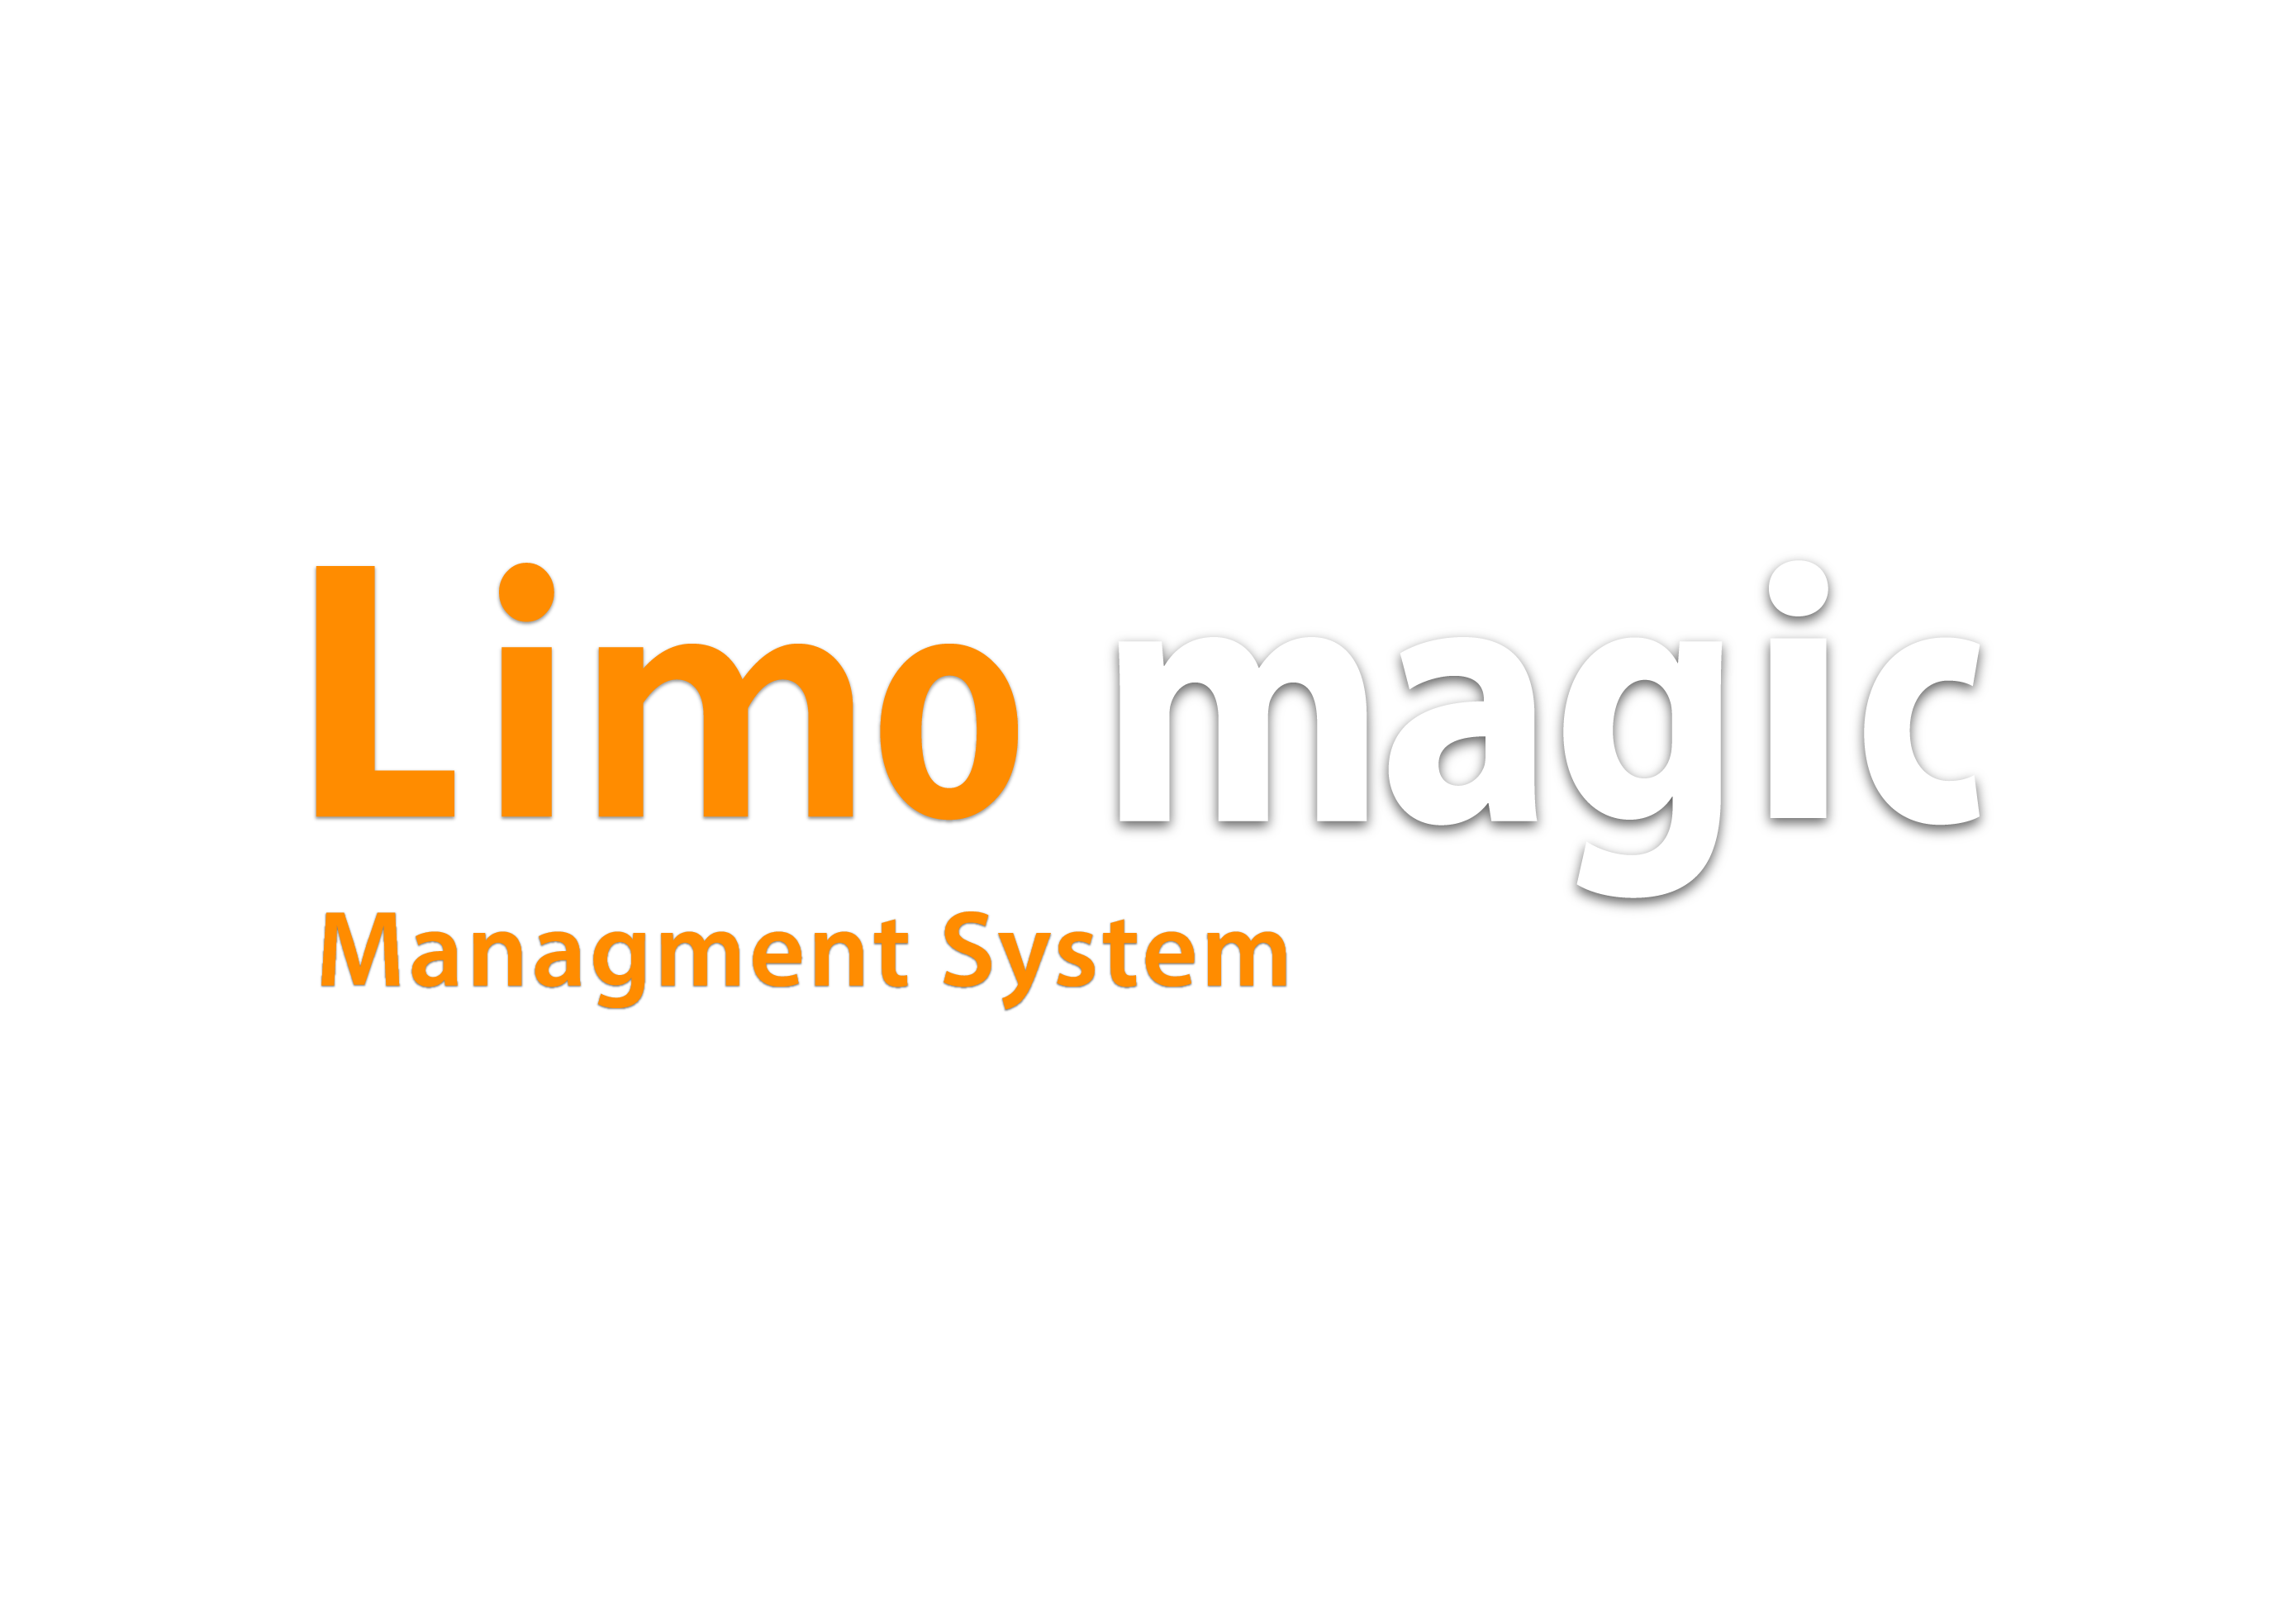 limo magic credit card processing